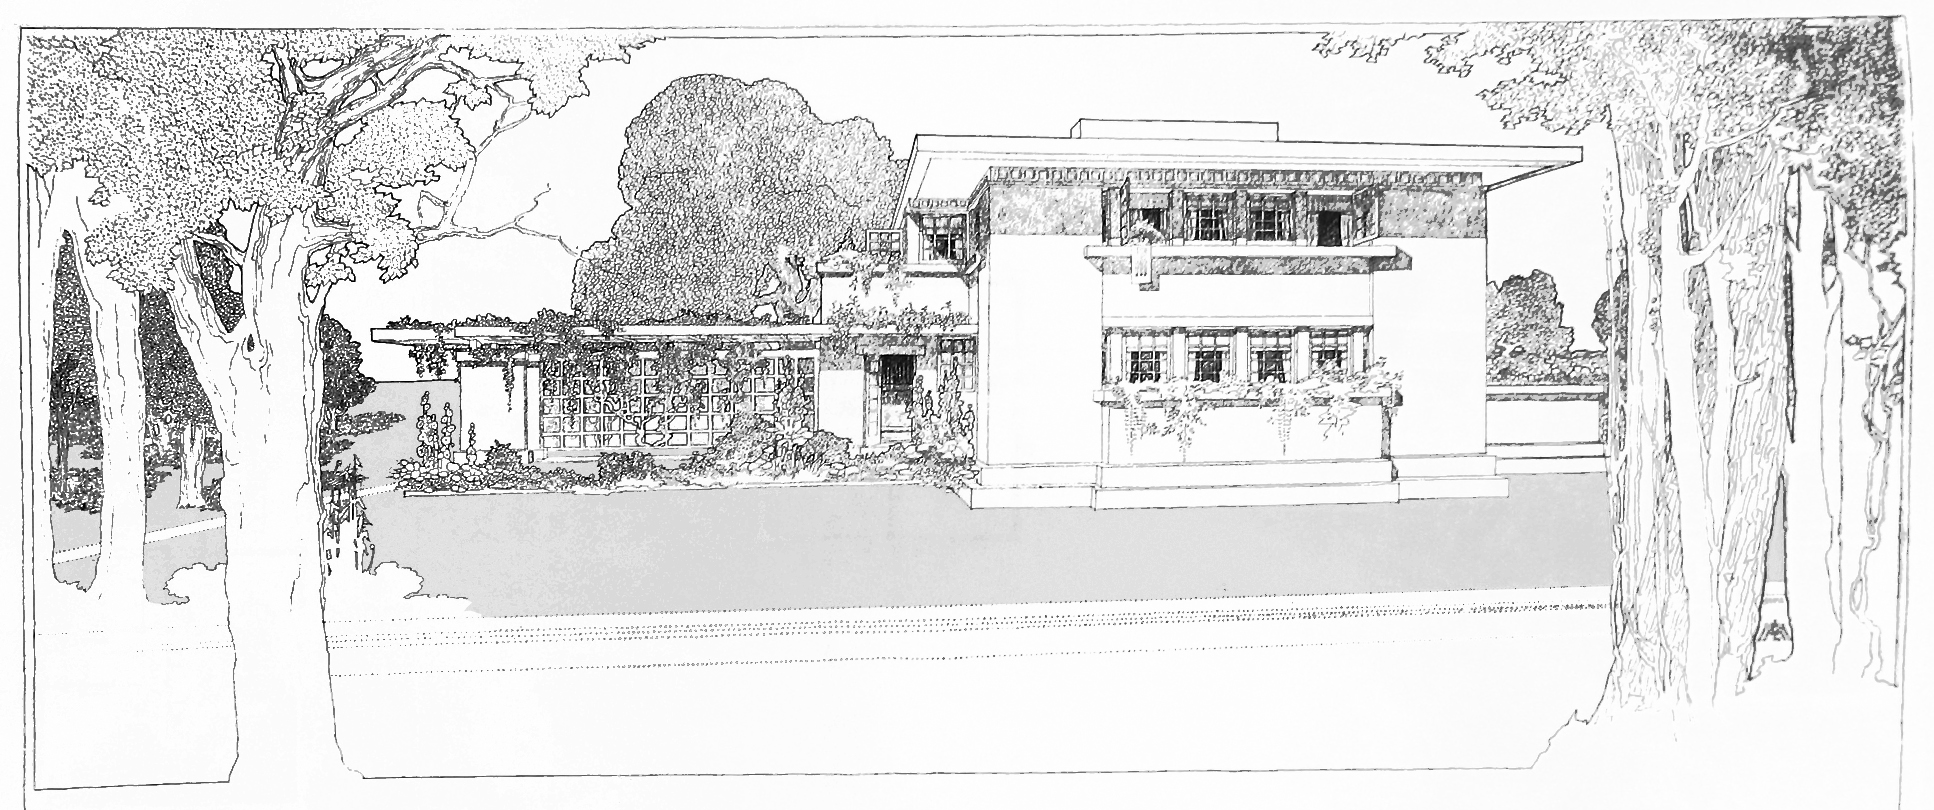 Marion Mahony Griffin A Fireproof House Frank Lloyd Wright female architects Chicago